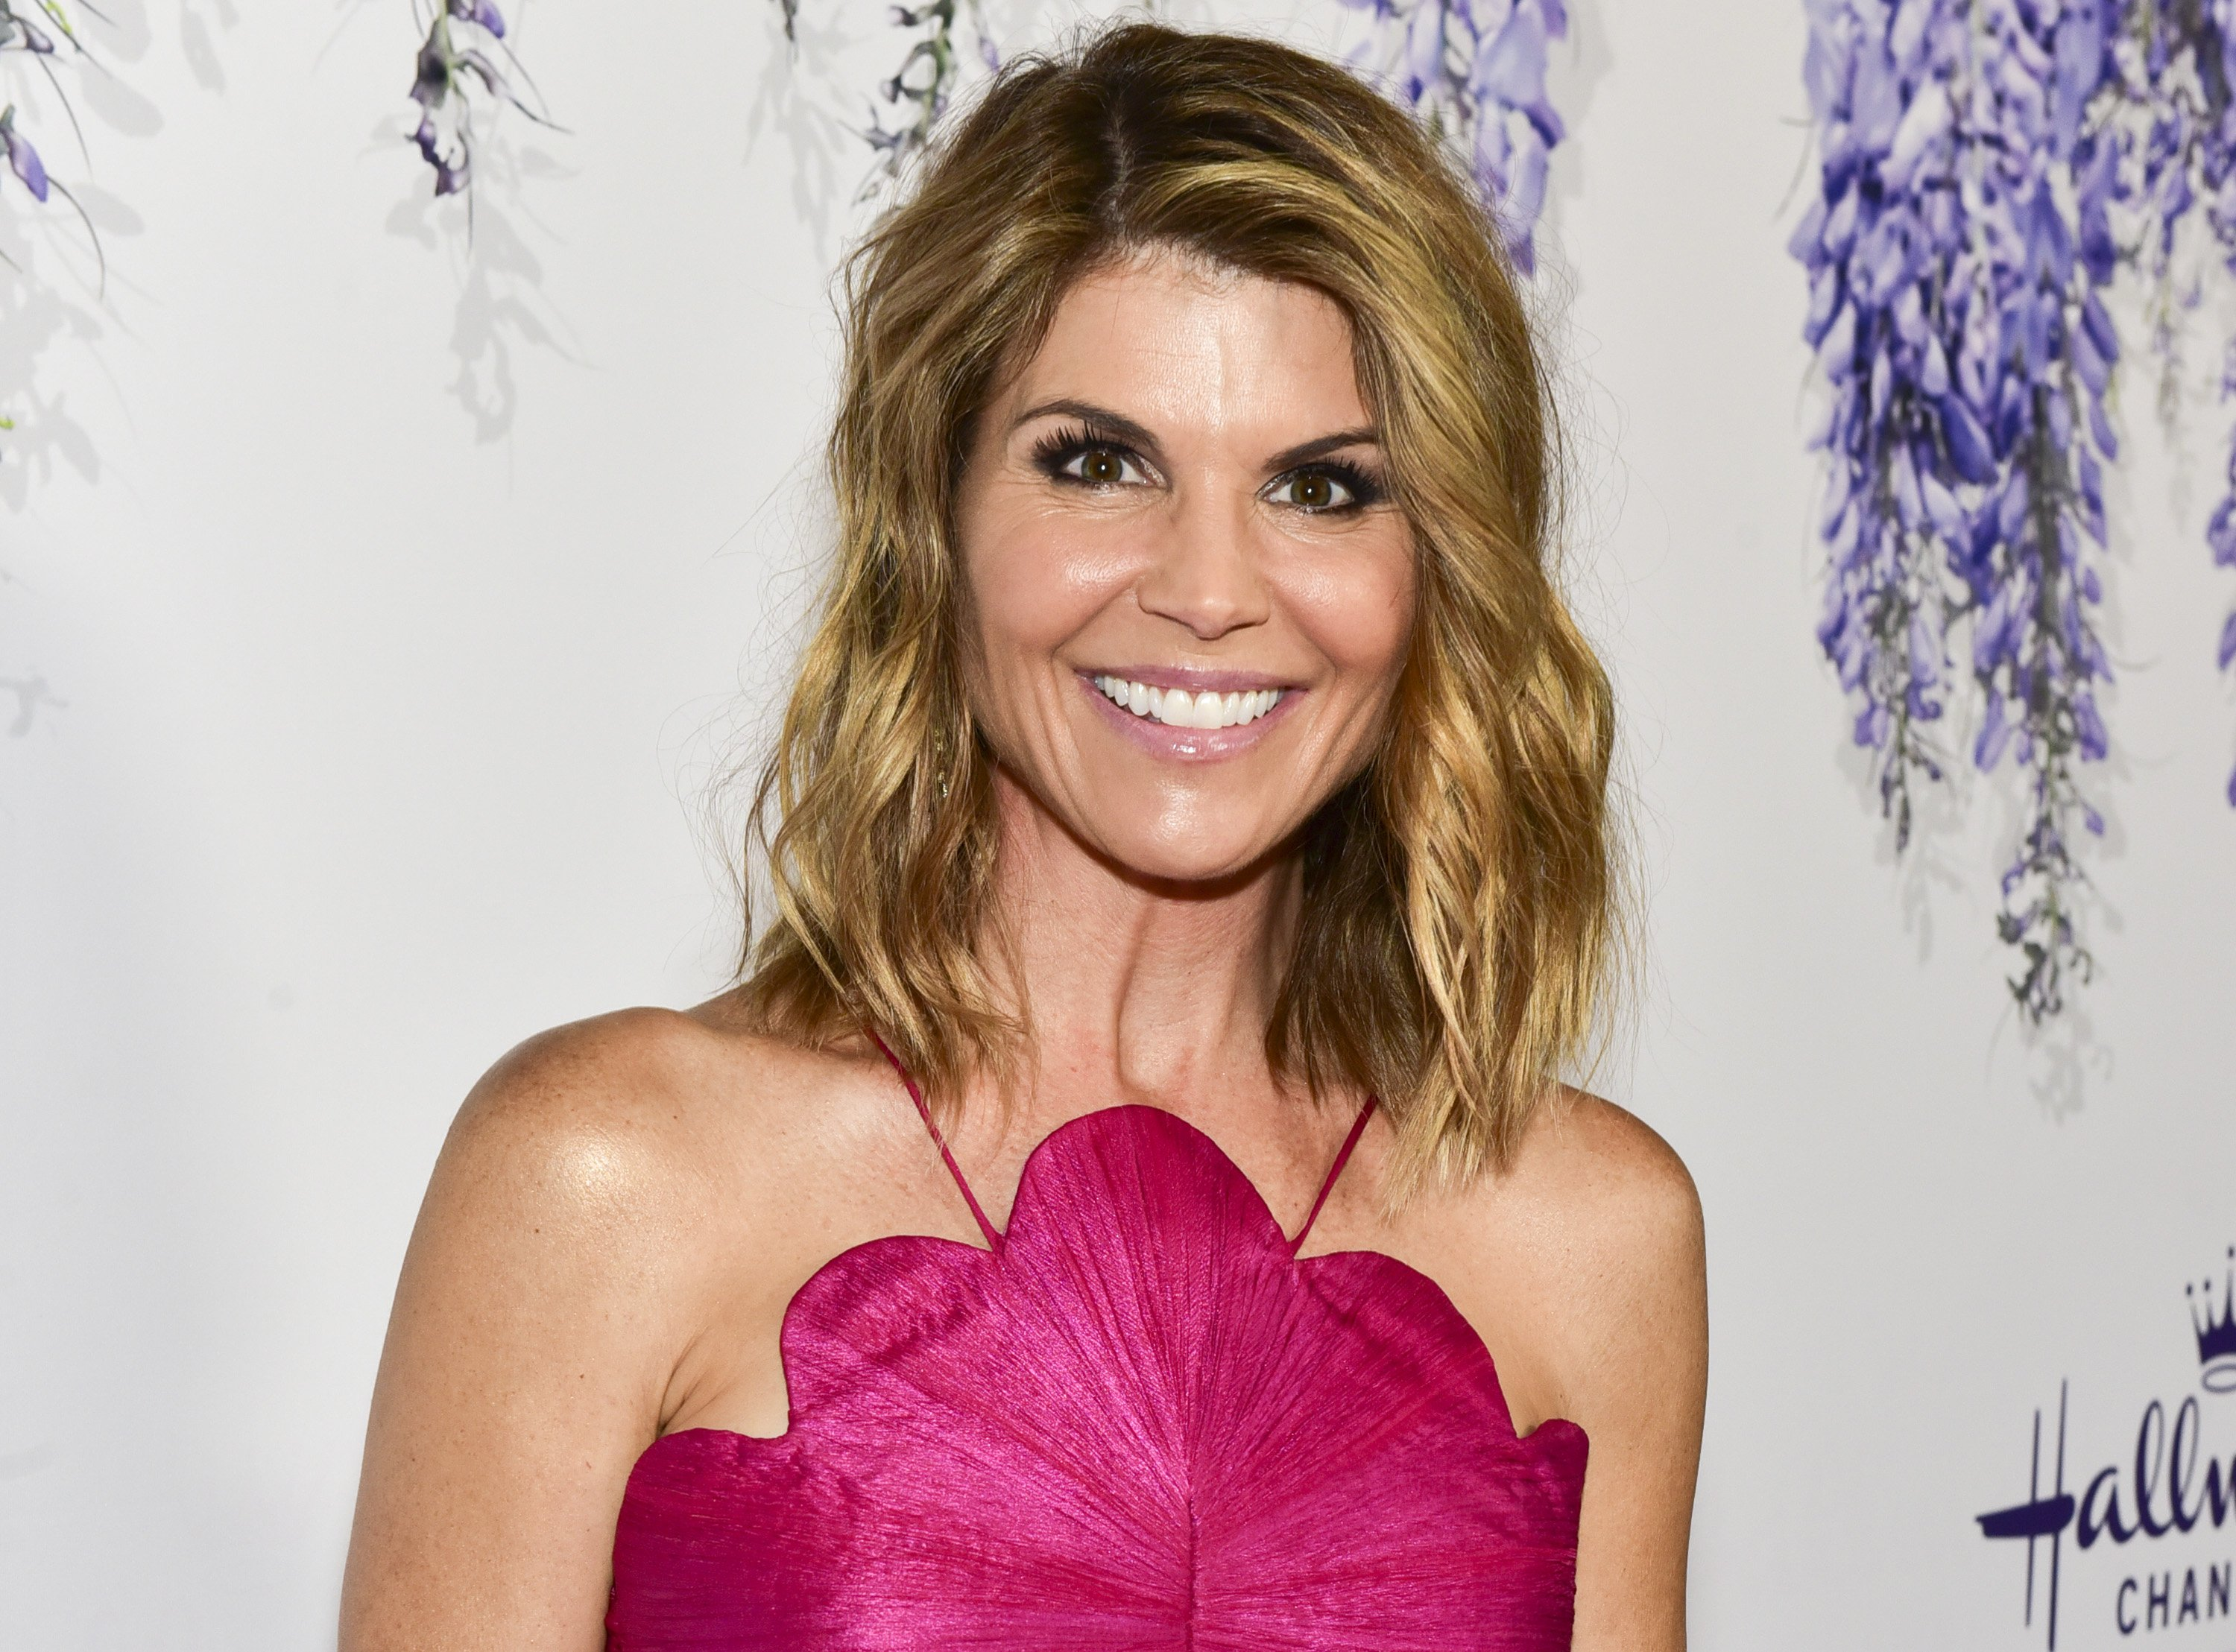 Lori Loughlin at the 2018 Hallmark Channel Summer TCA   Photo: Getty Images